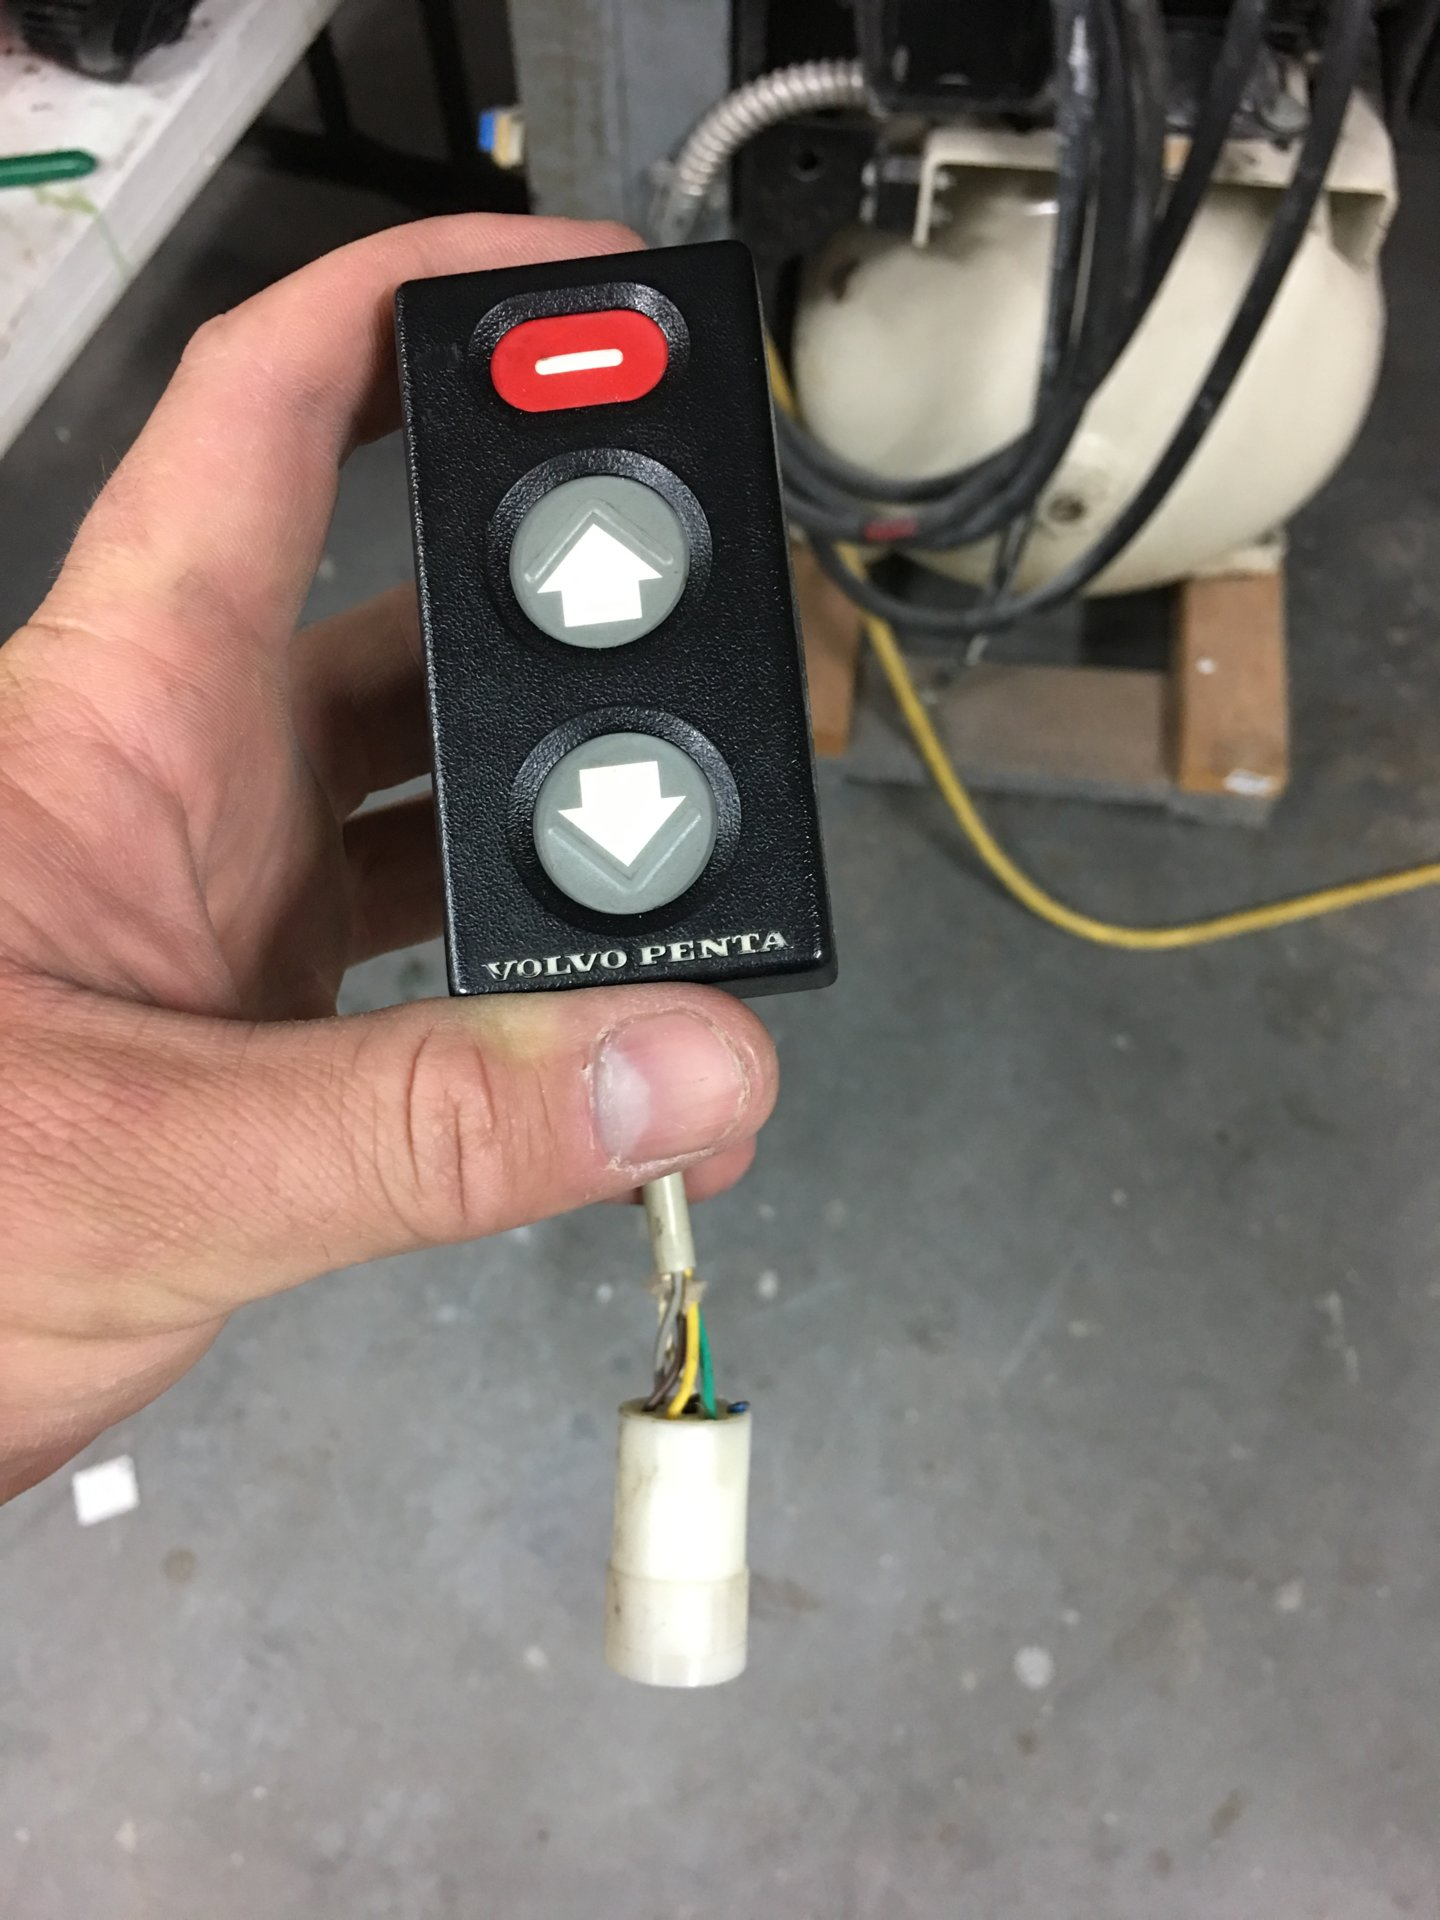 For Sale - Volvo Penta ad41 ignition switch and warning get